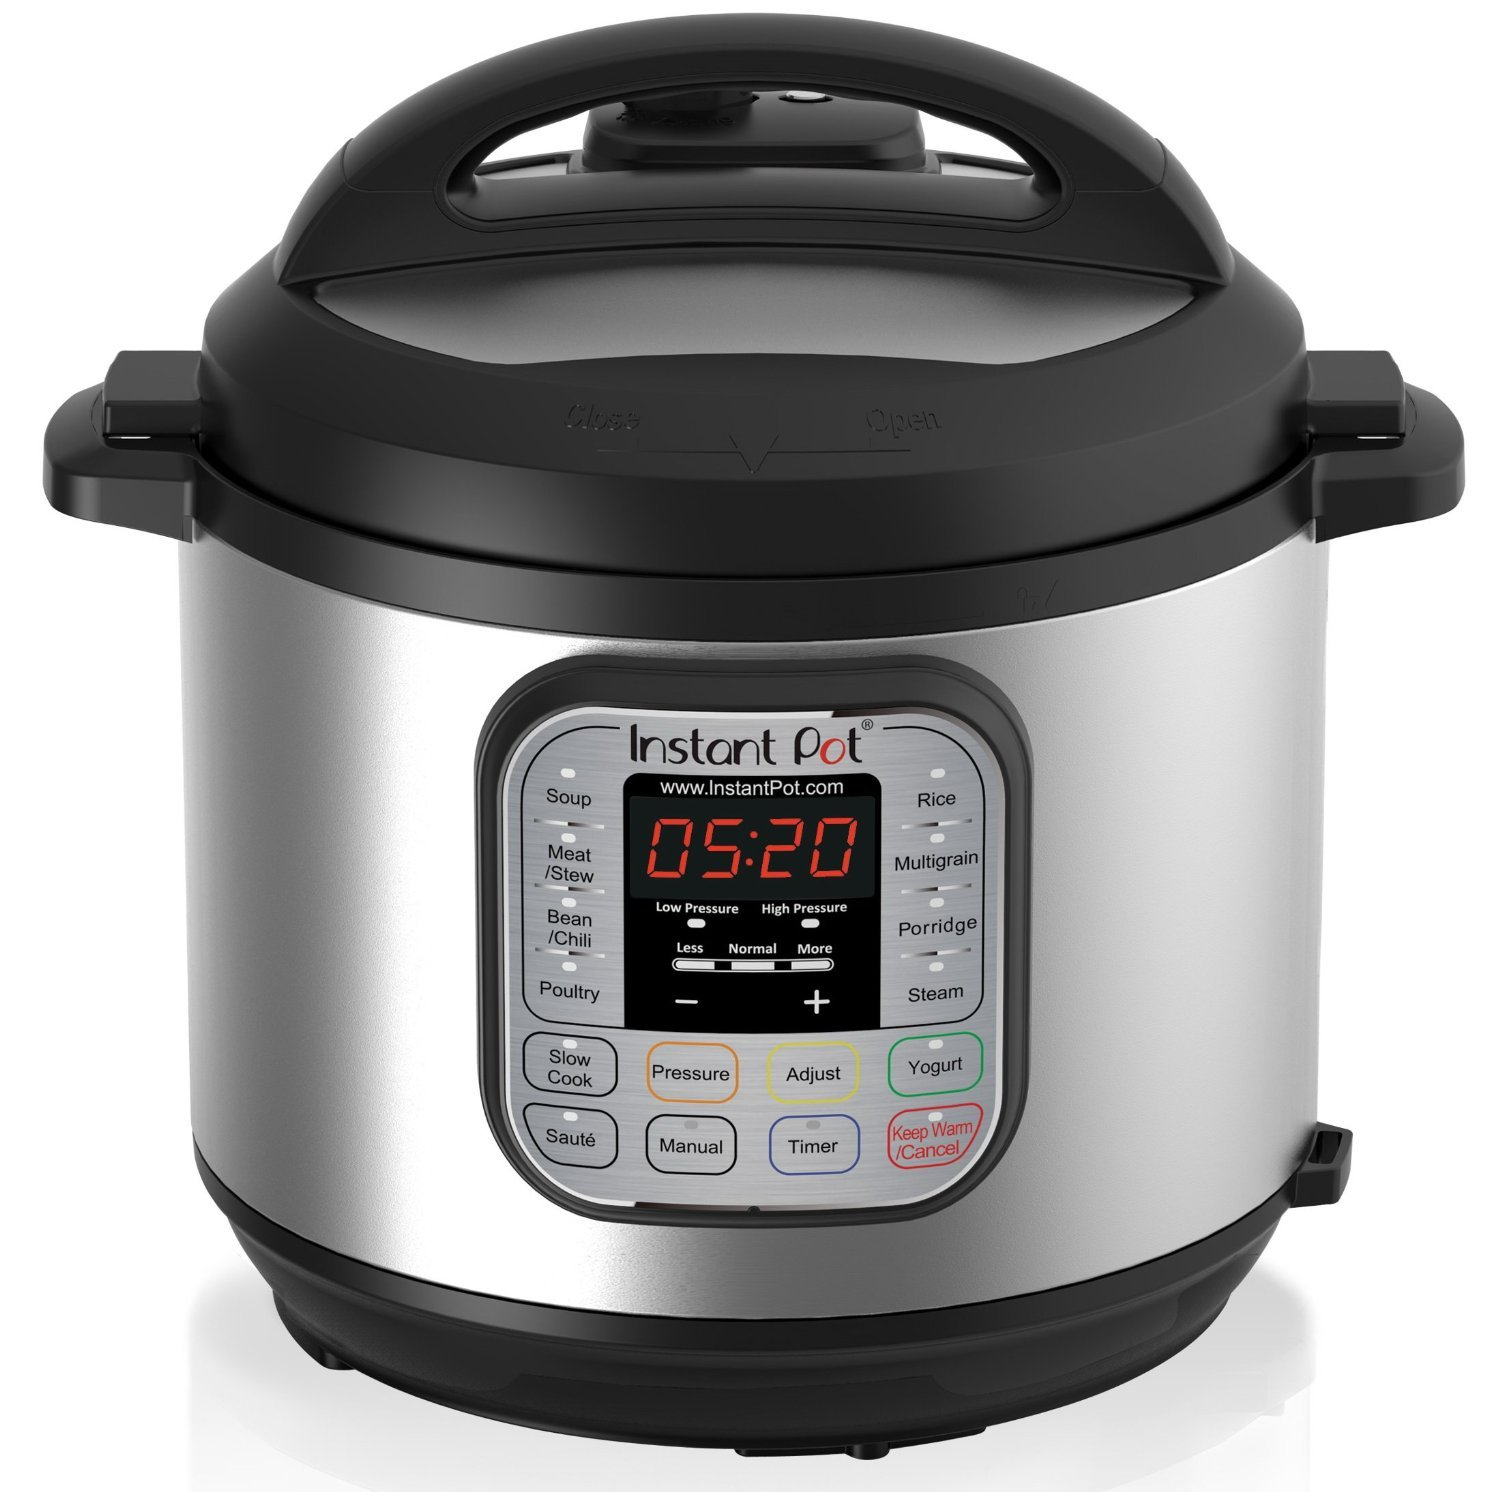 Instant Pot 6qt 7-in-1 Multi-Functional Pressure Cooker